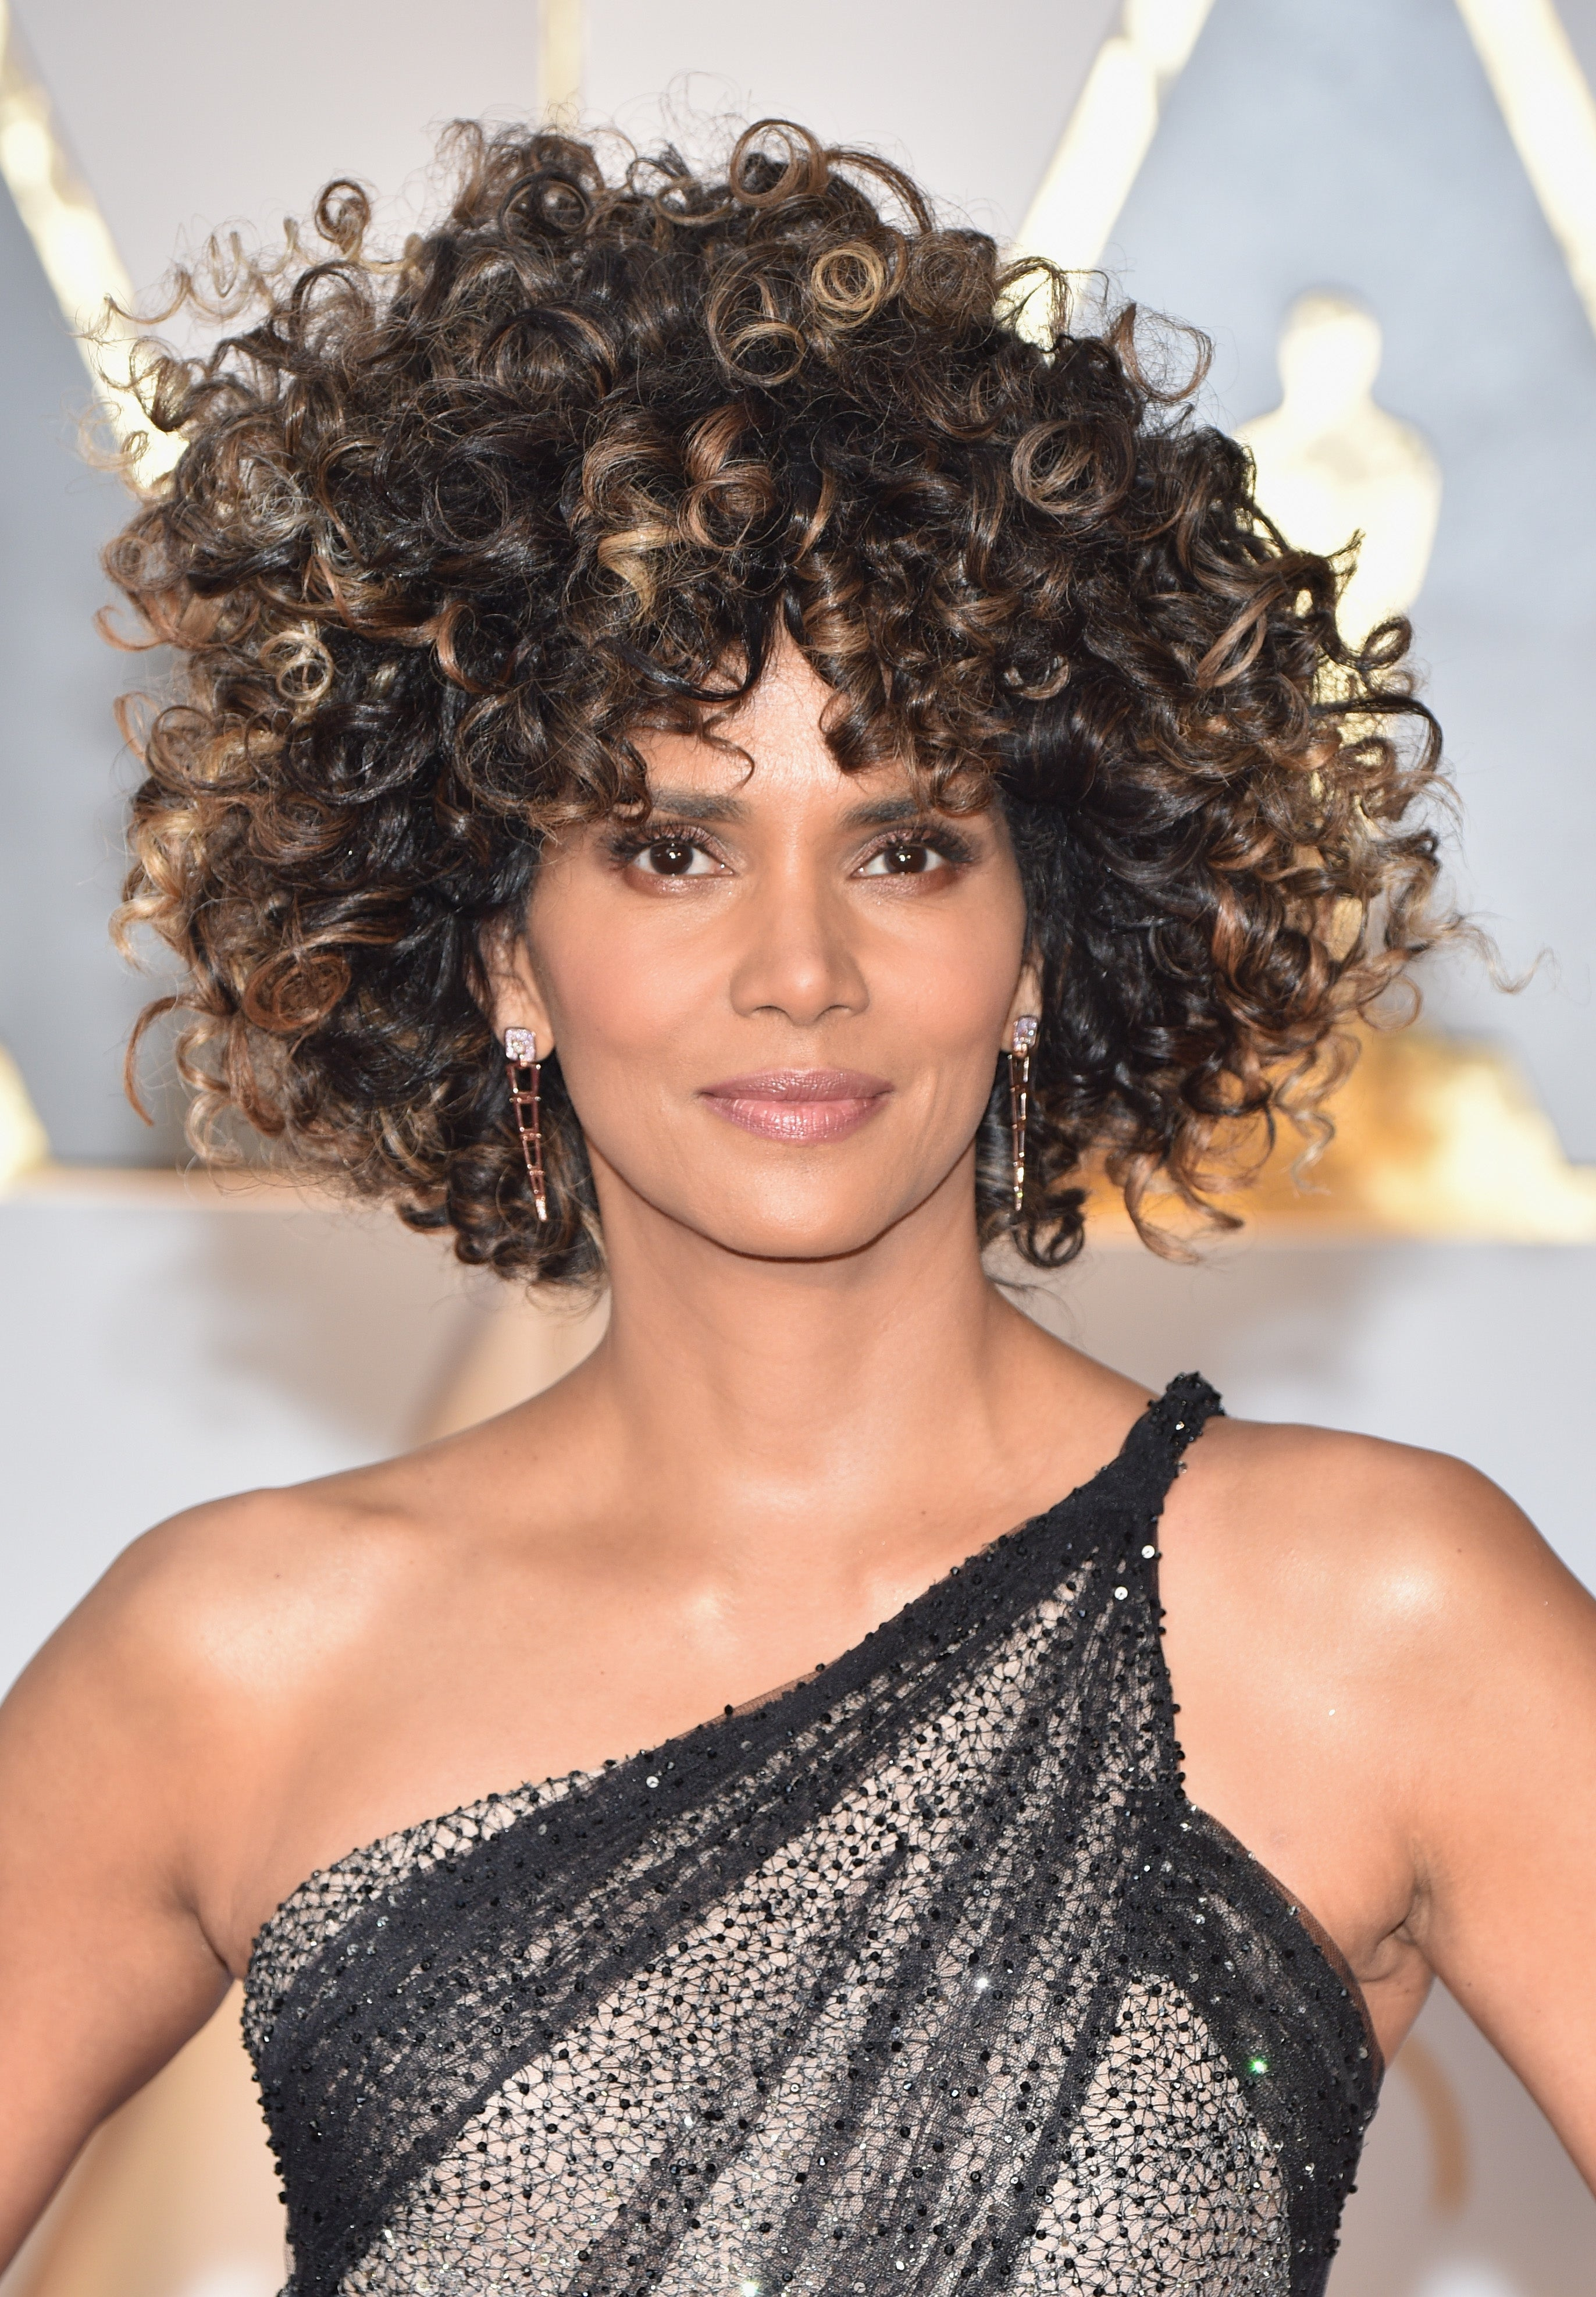 Halle Berry Defends Her Oscar Curls: 'I Celebrate My